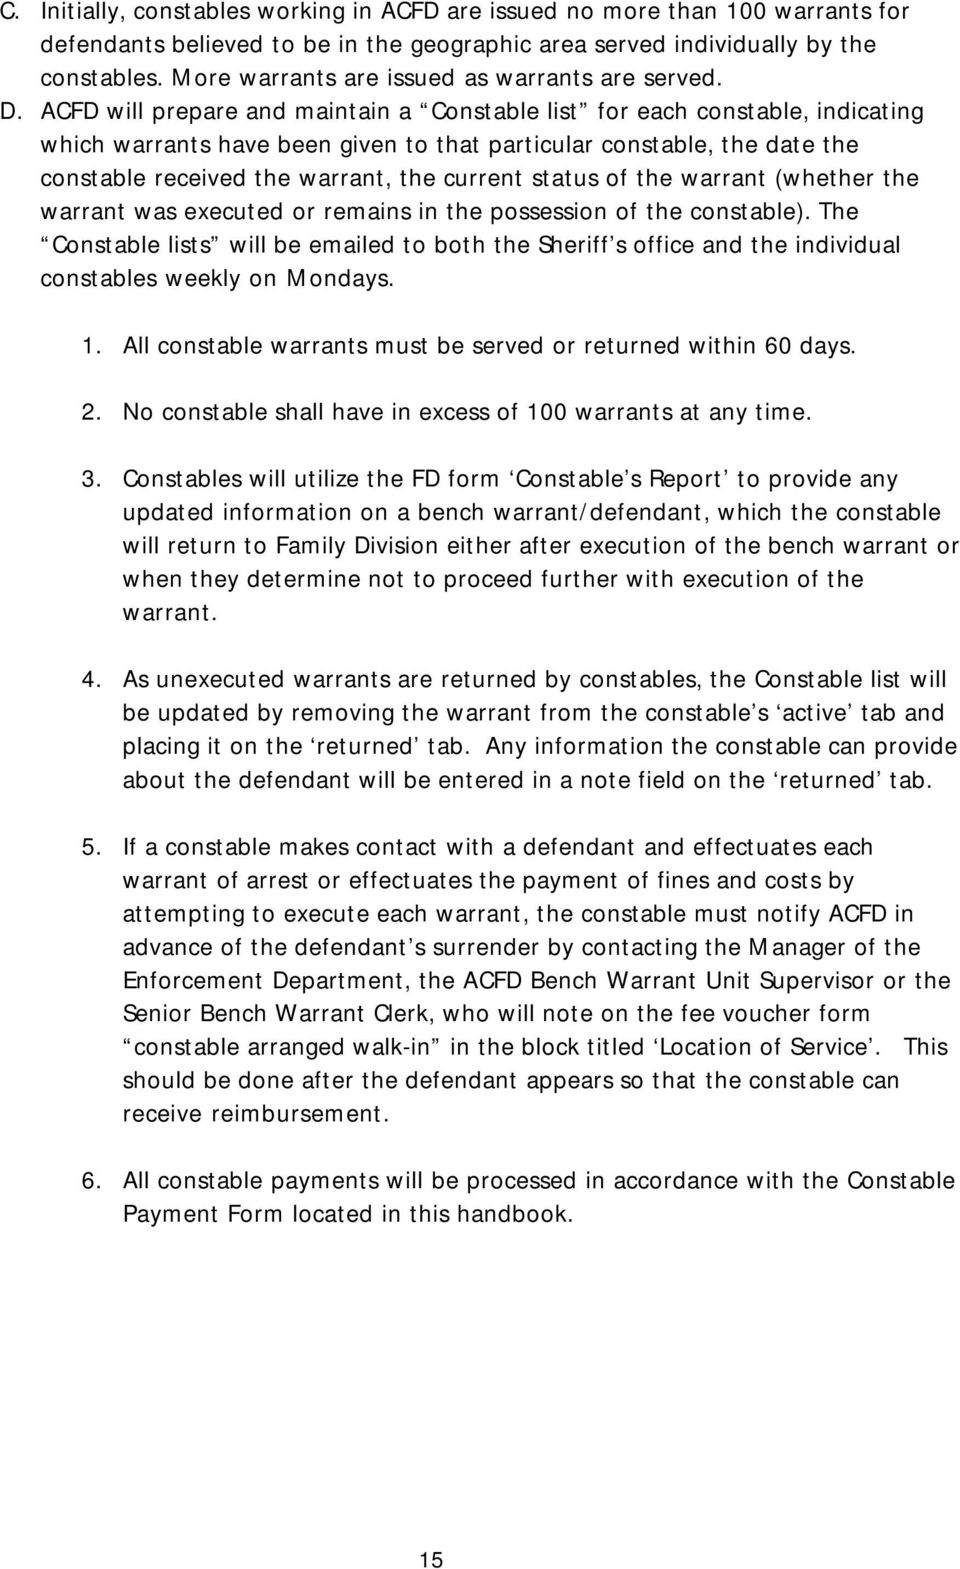 ACFD will prepare and maintain a Constable list for each constable, indicating which warrants have been given to that particular constable, the date the constable received the warrant, the current